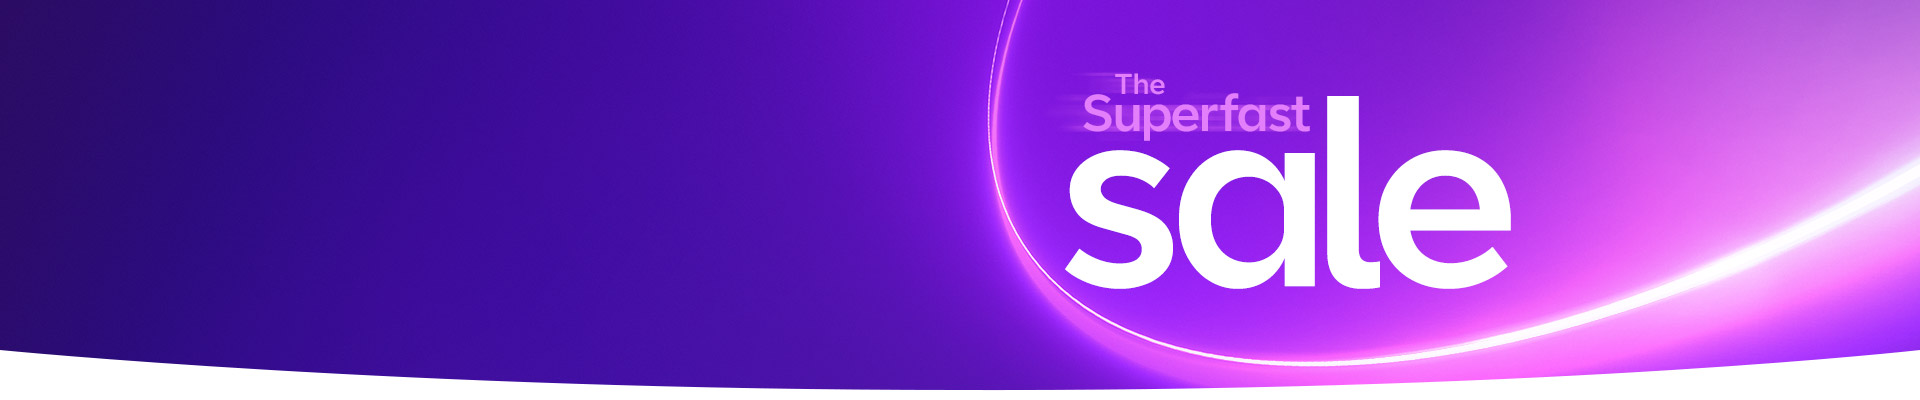 Get BT broadband in our superfast sale